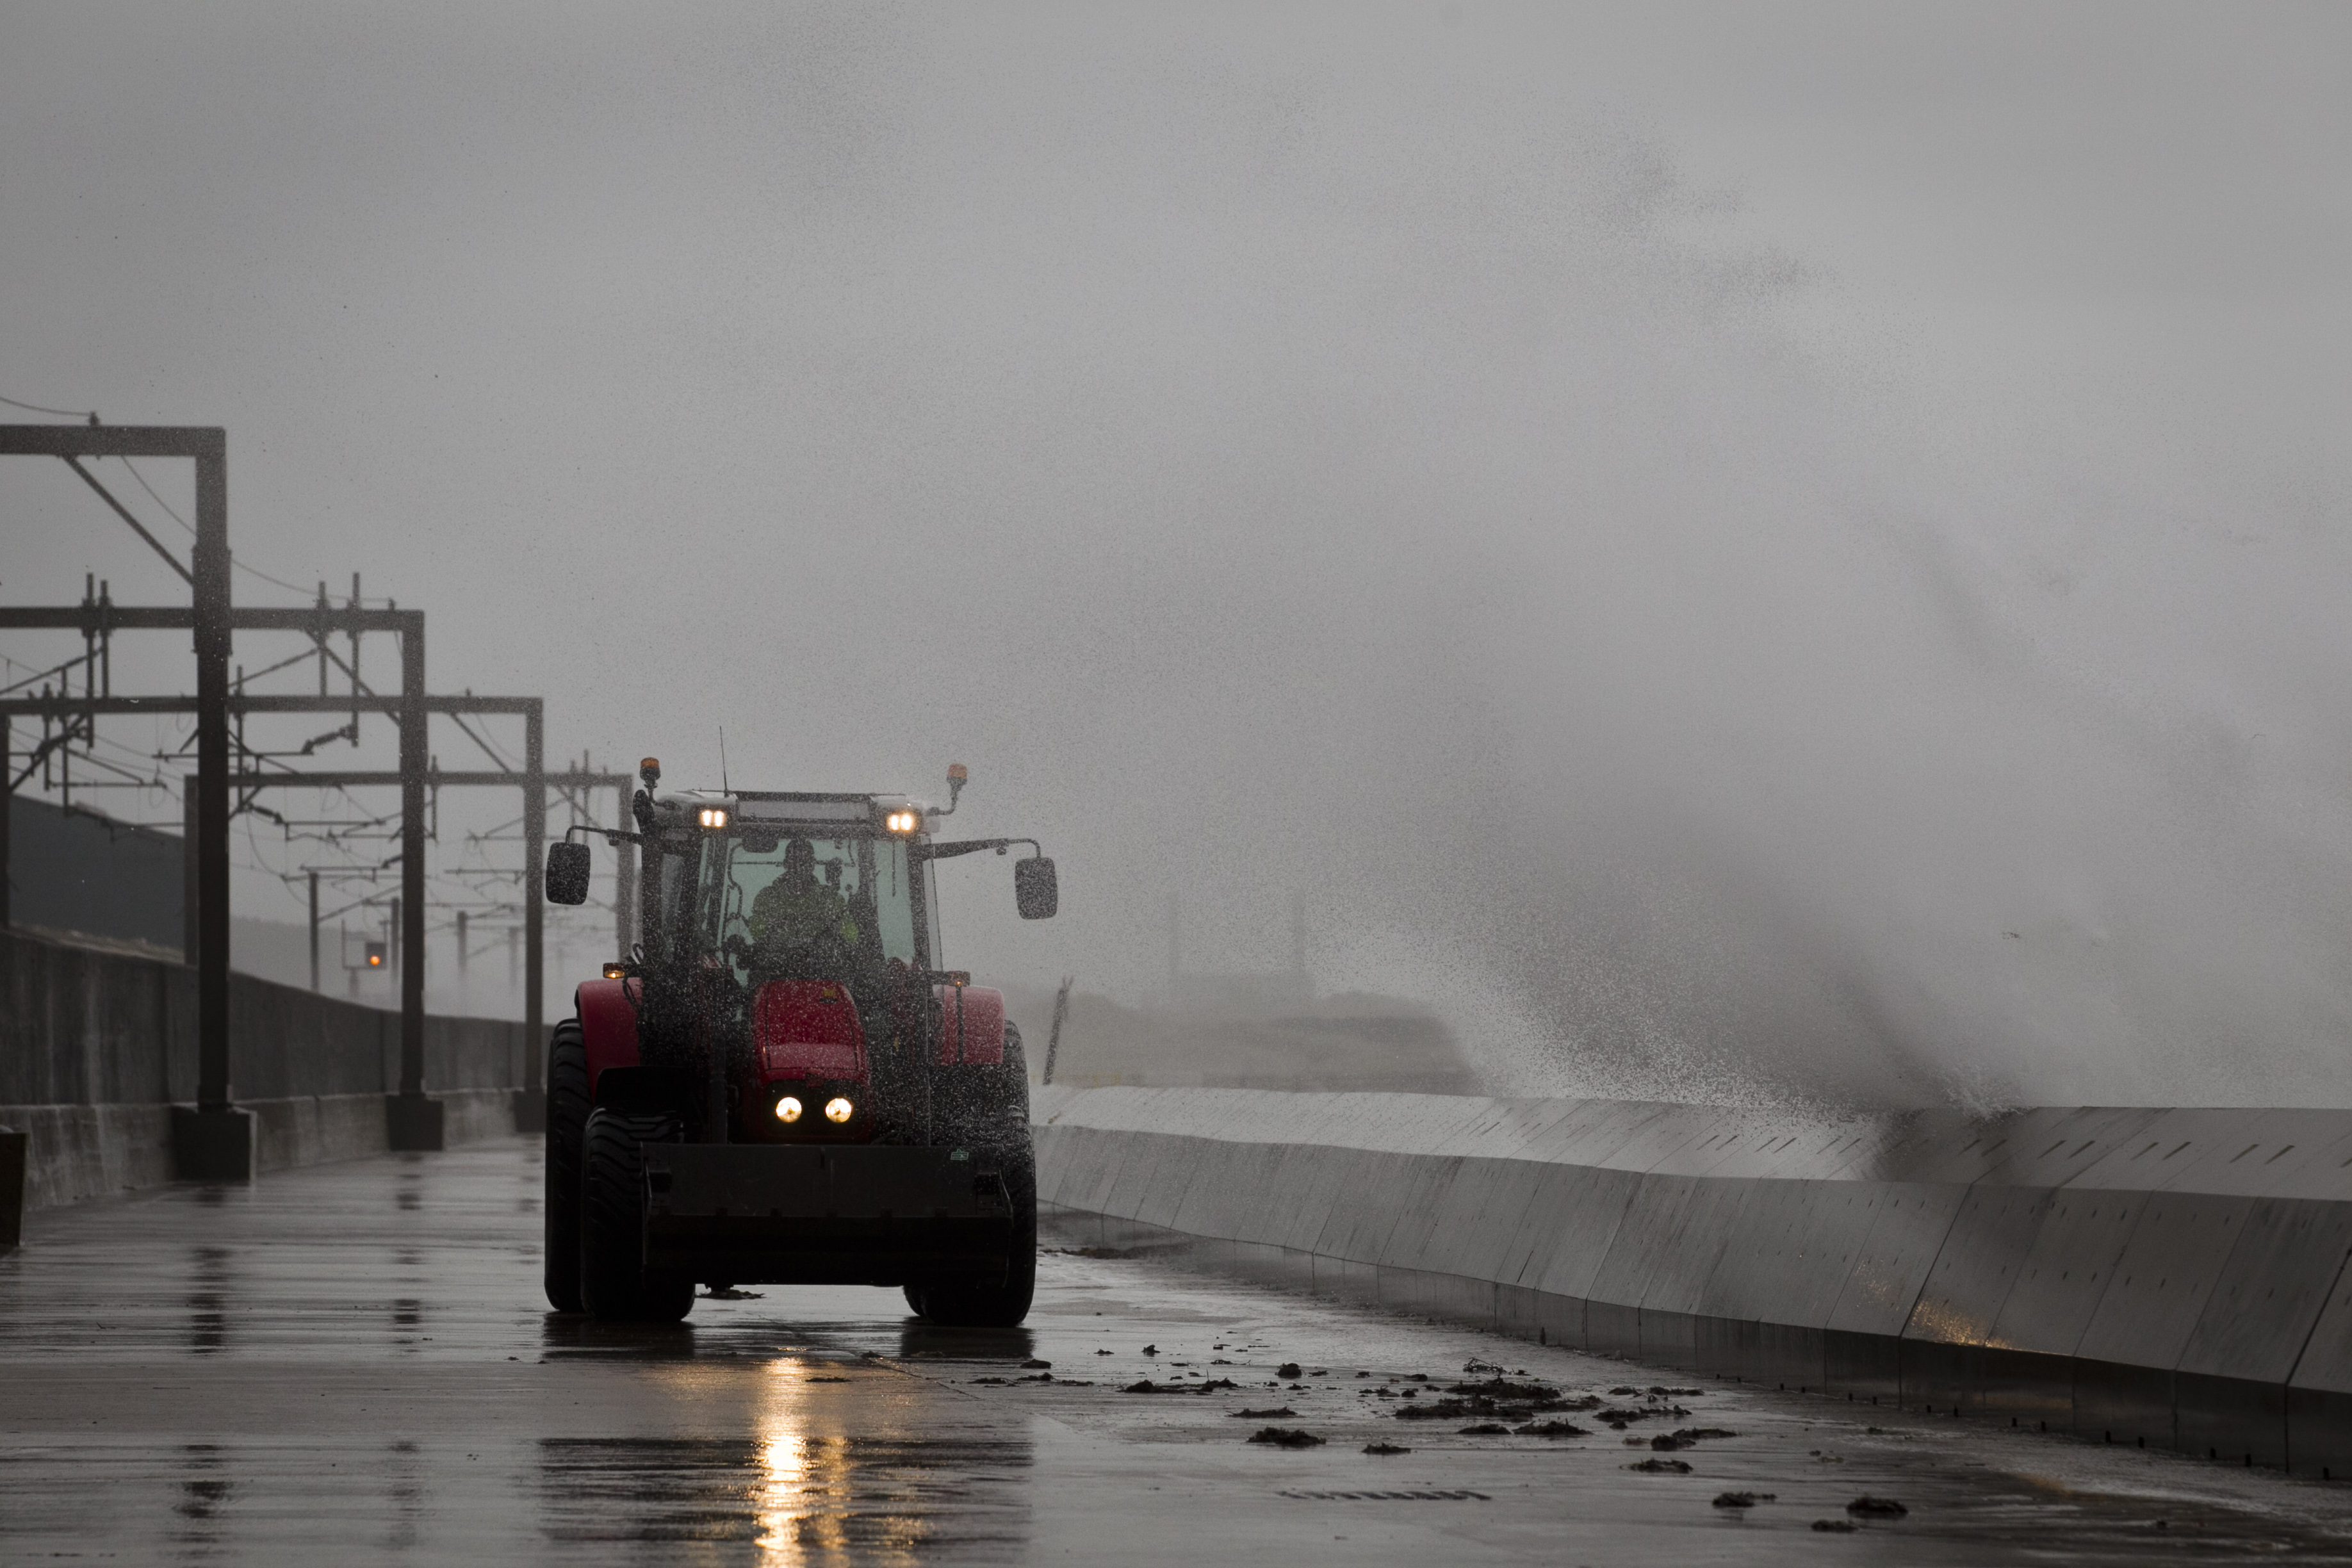 Strong winds lead to high waves at Saltcoats, as seen earlier this year (Andrew Cawley / DC Thomson)